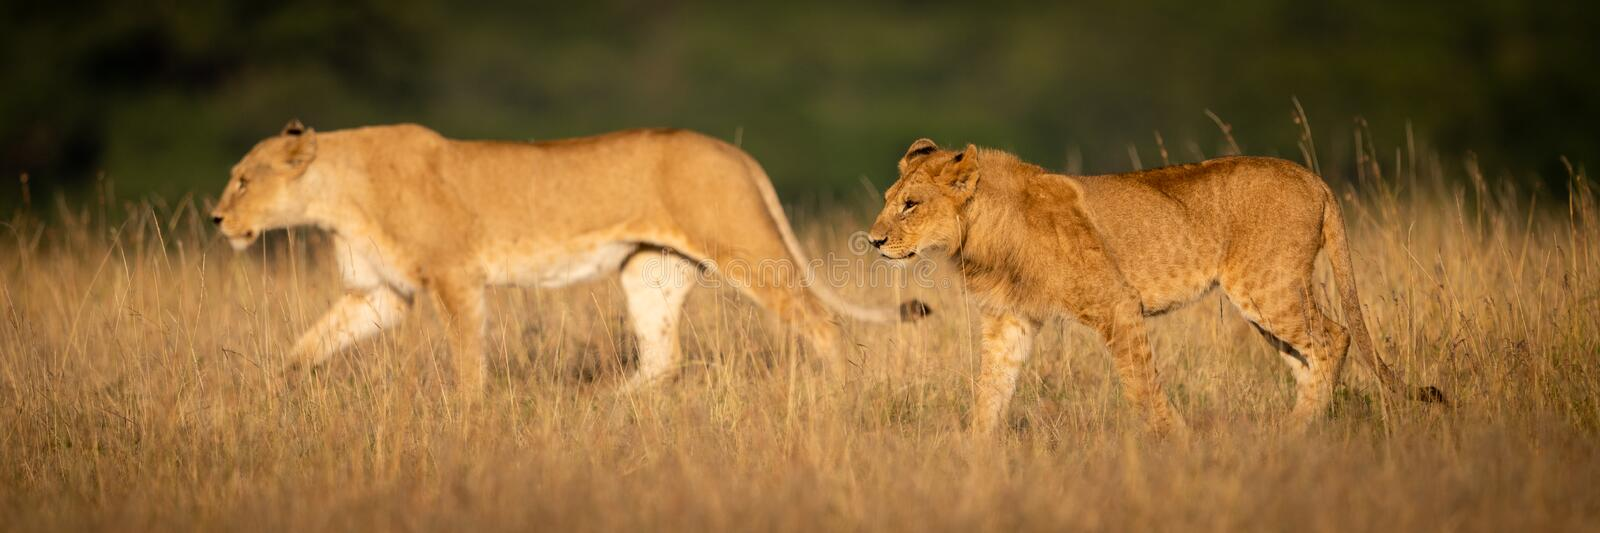 Panorama of lion and lioness walking side-by-side royalty free stock photo